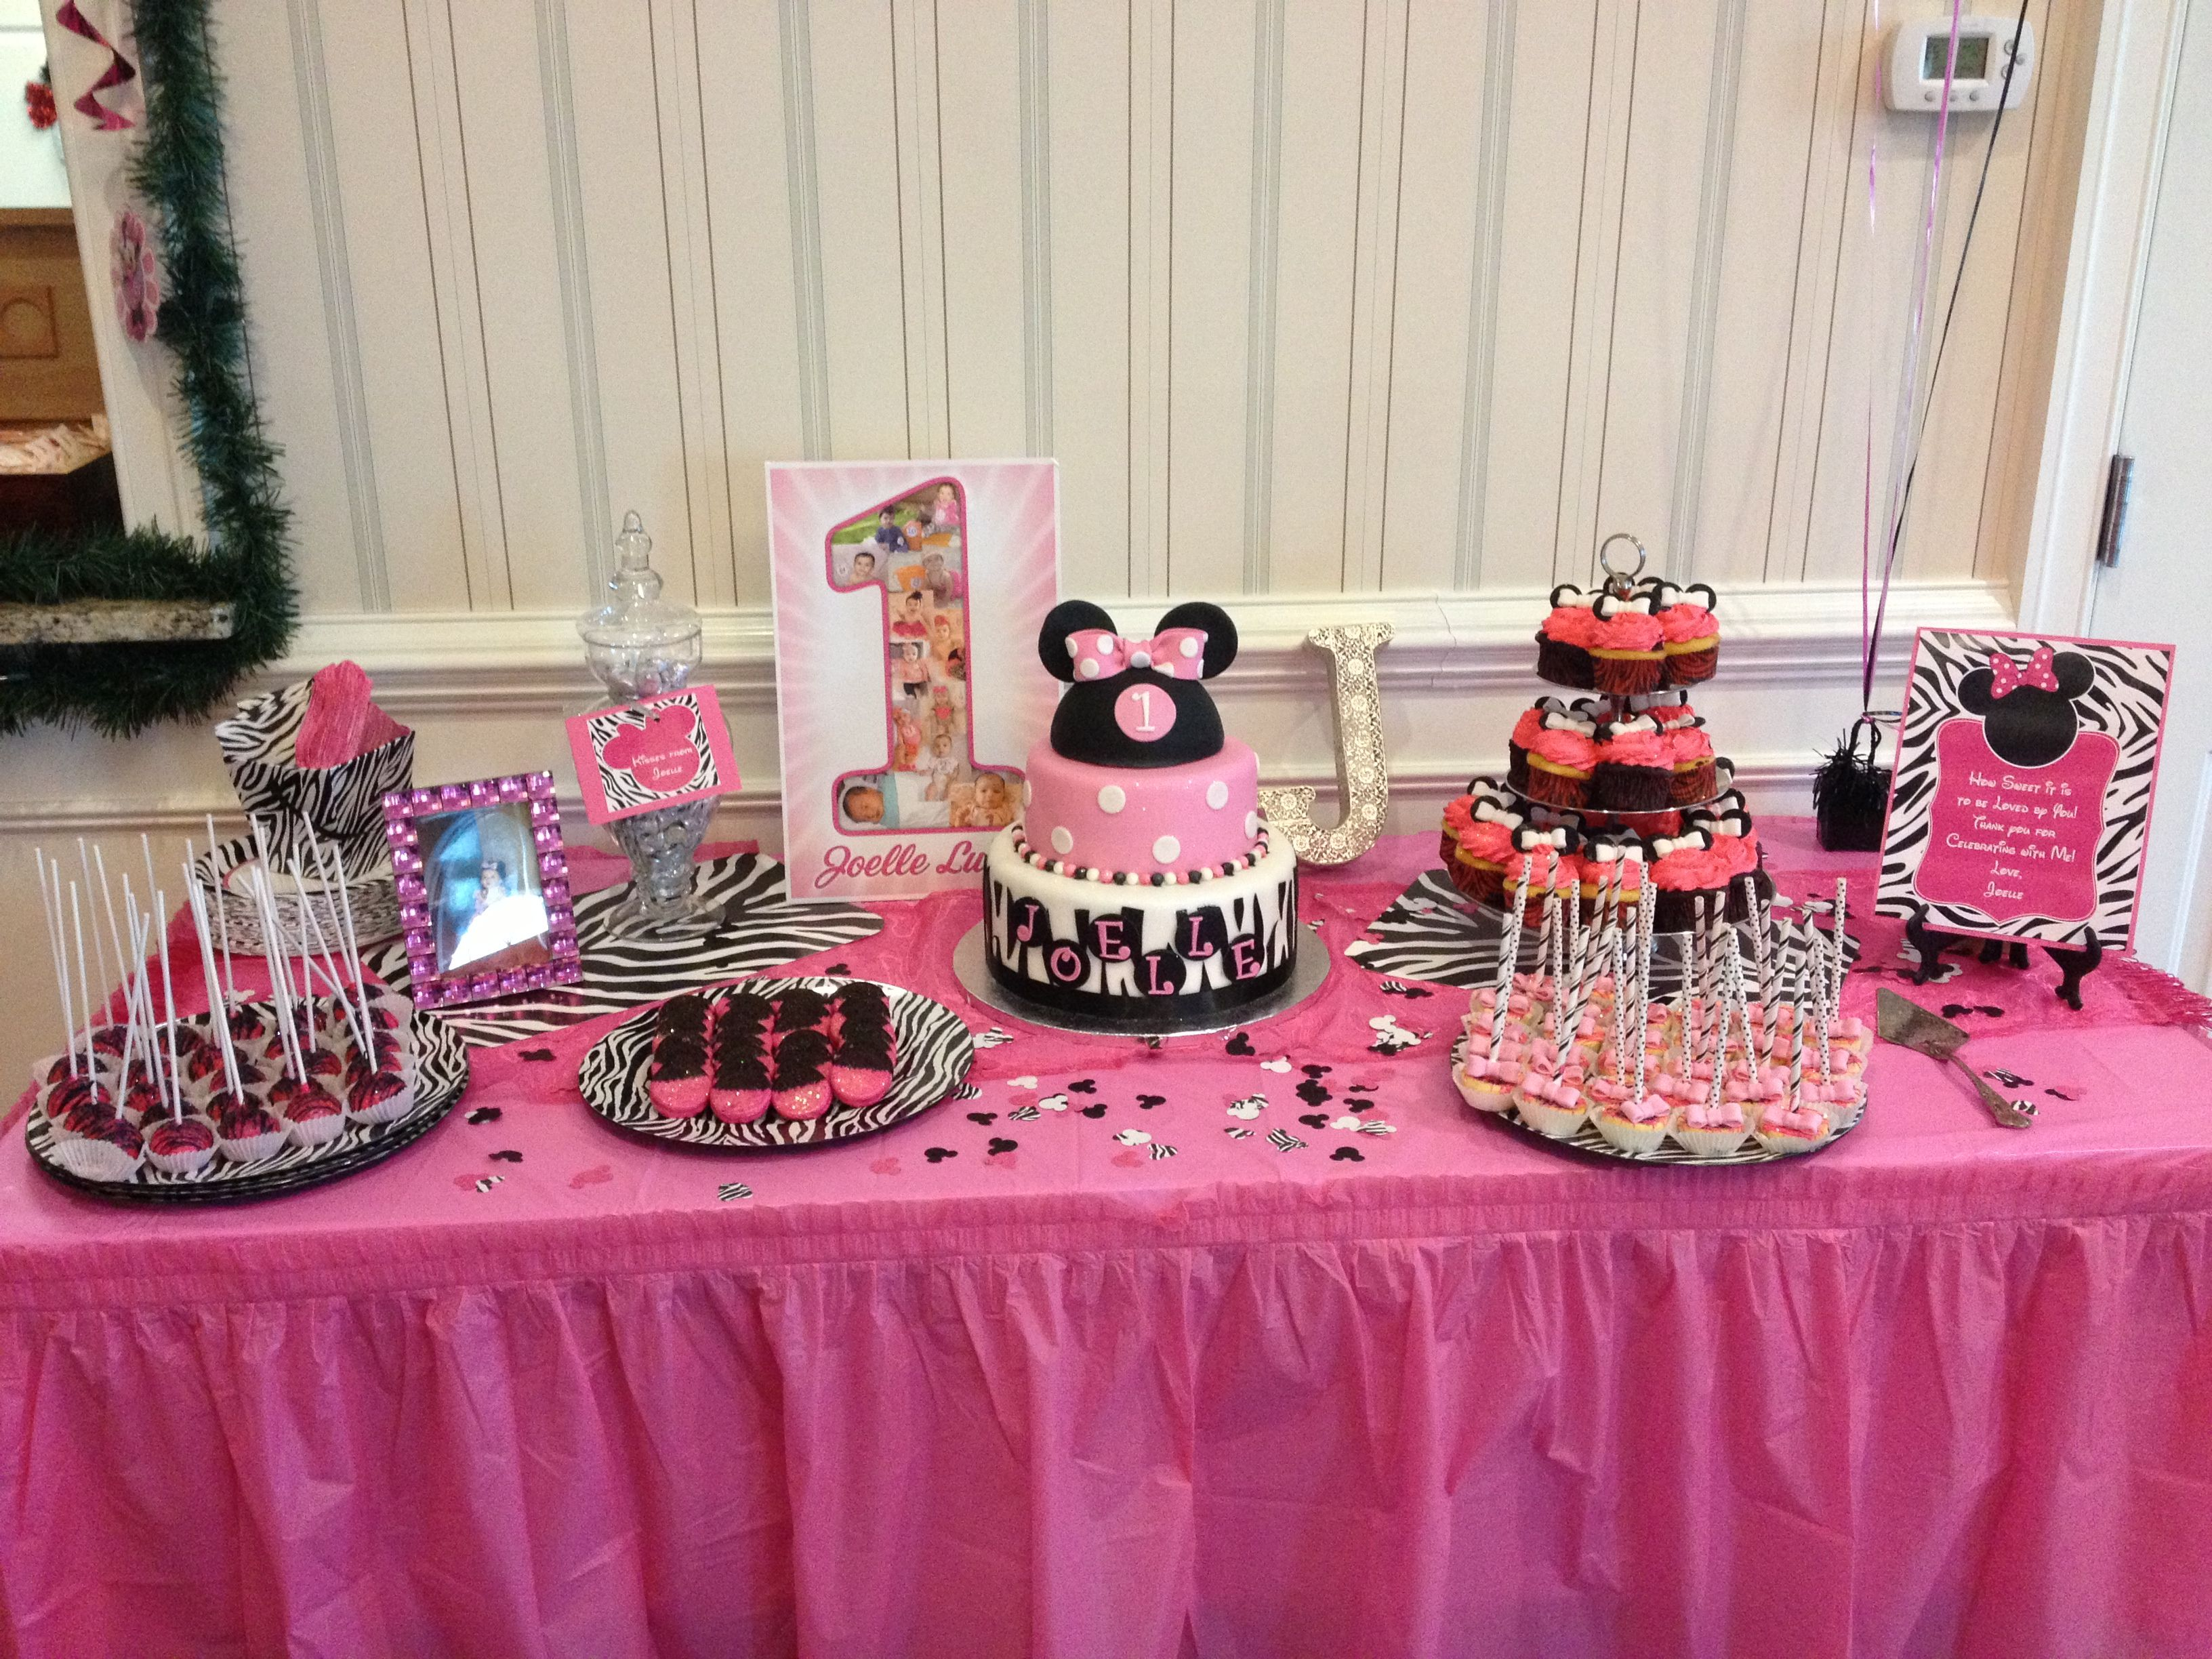 Yummy Dessert Table For My Baby Girls 1st Birthday Party Minnie Mouse Zebra Theme Desserts Provided By Conti S Pastry Shop